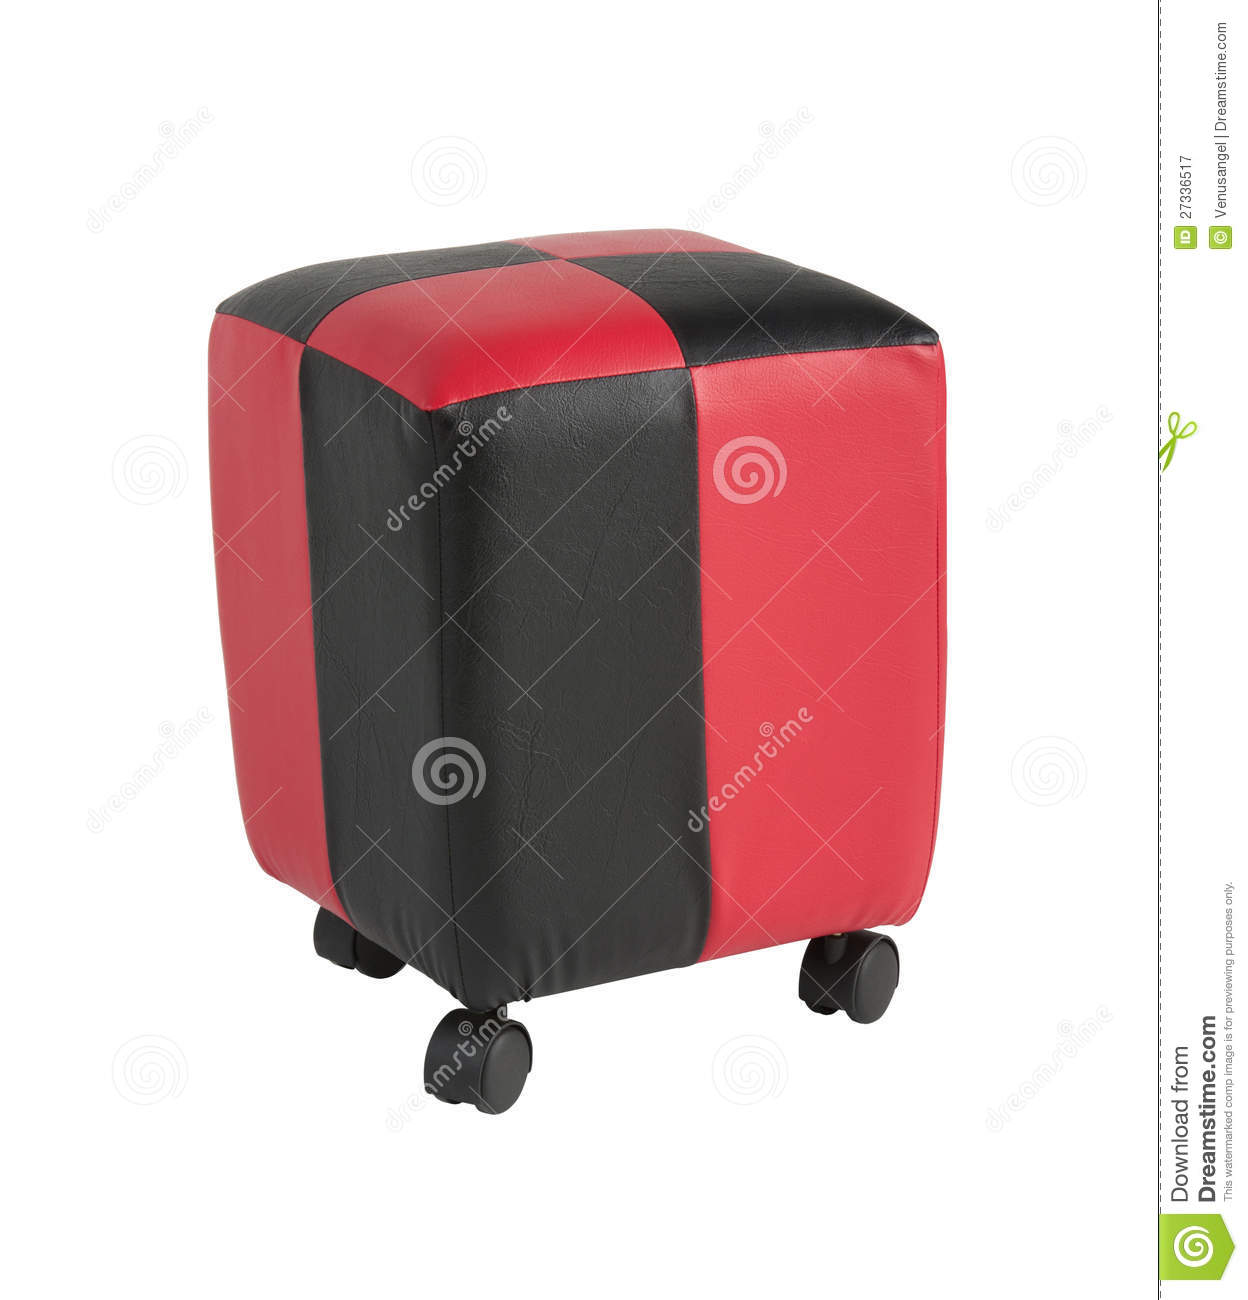 Royalty-Free Stock Photo  sc 1 st  Dreamstime.com : office stools on wheels - islam-shia.org